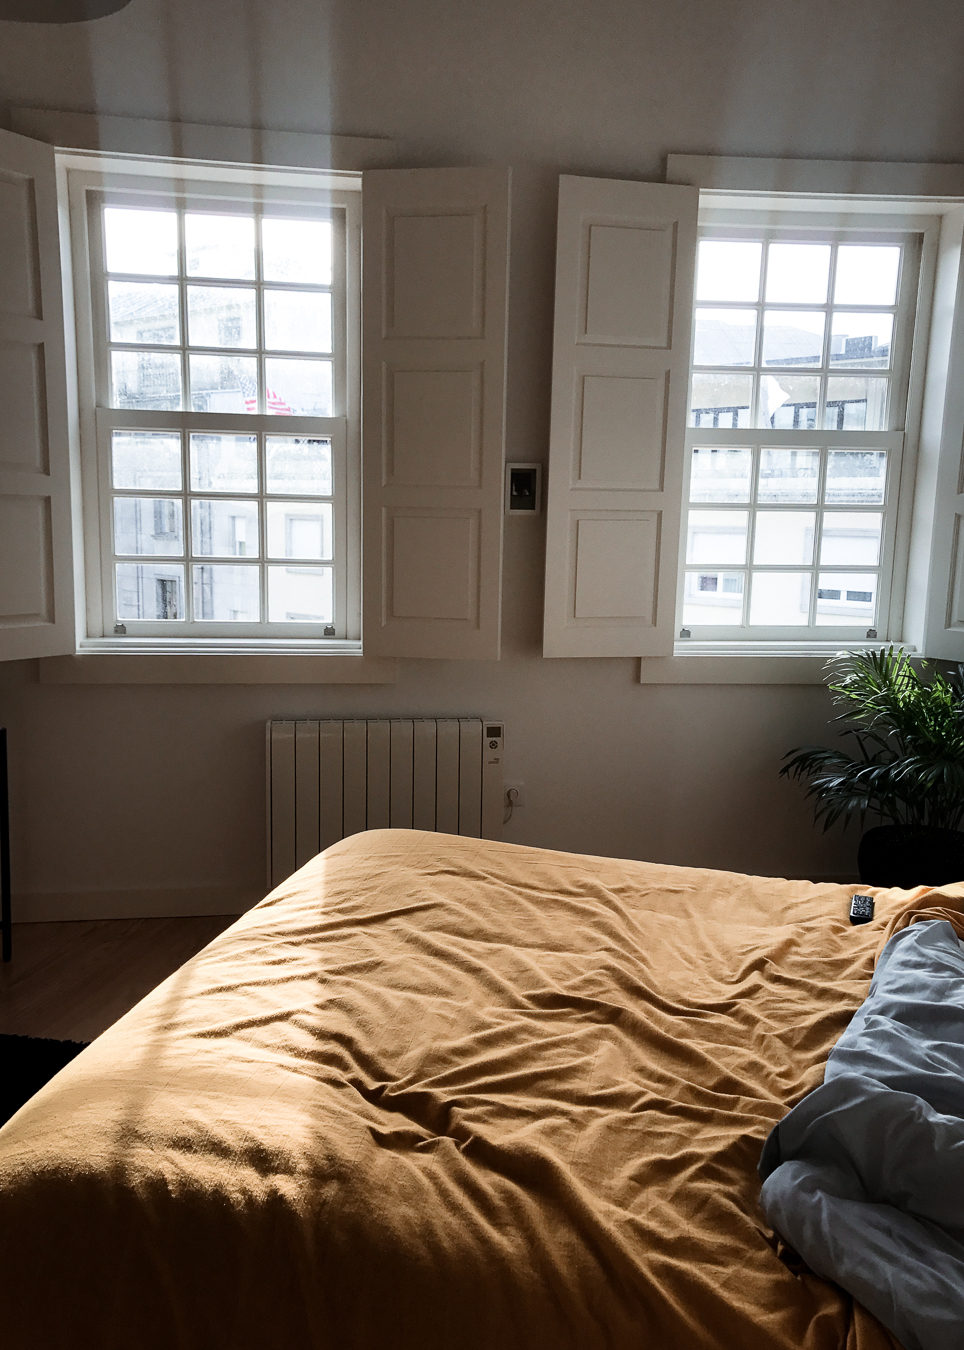 An  Ana's cute studio in Porto for 40 euros a night.